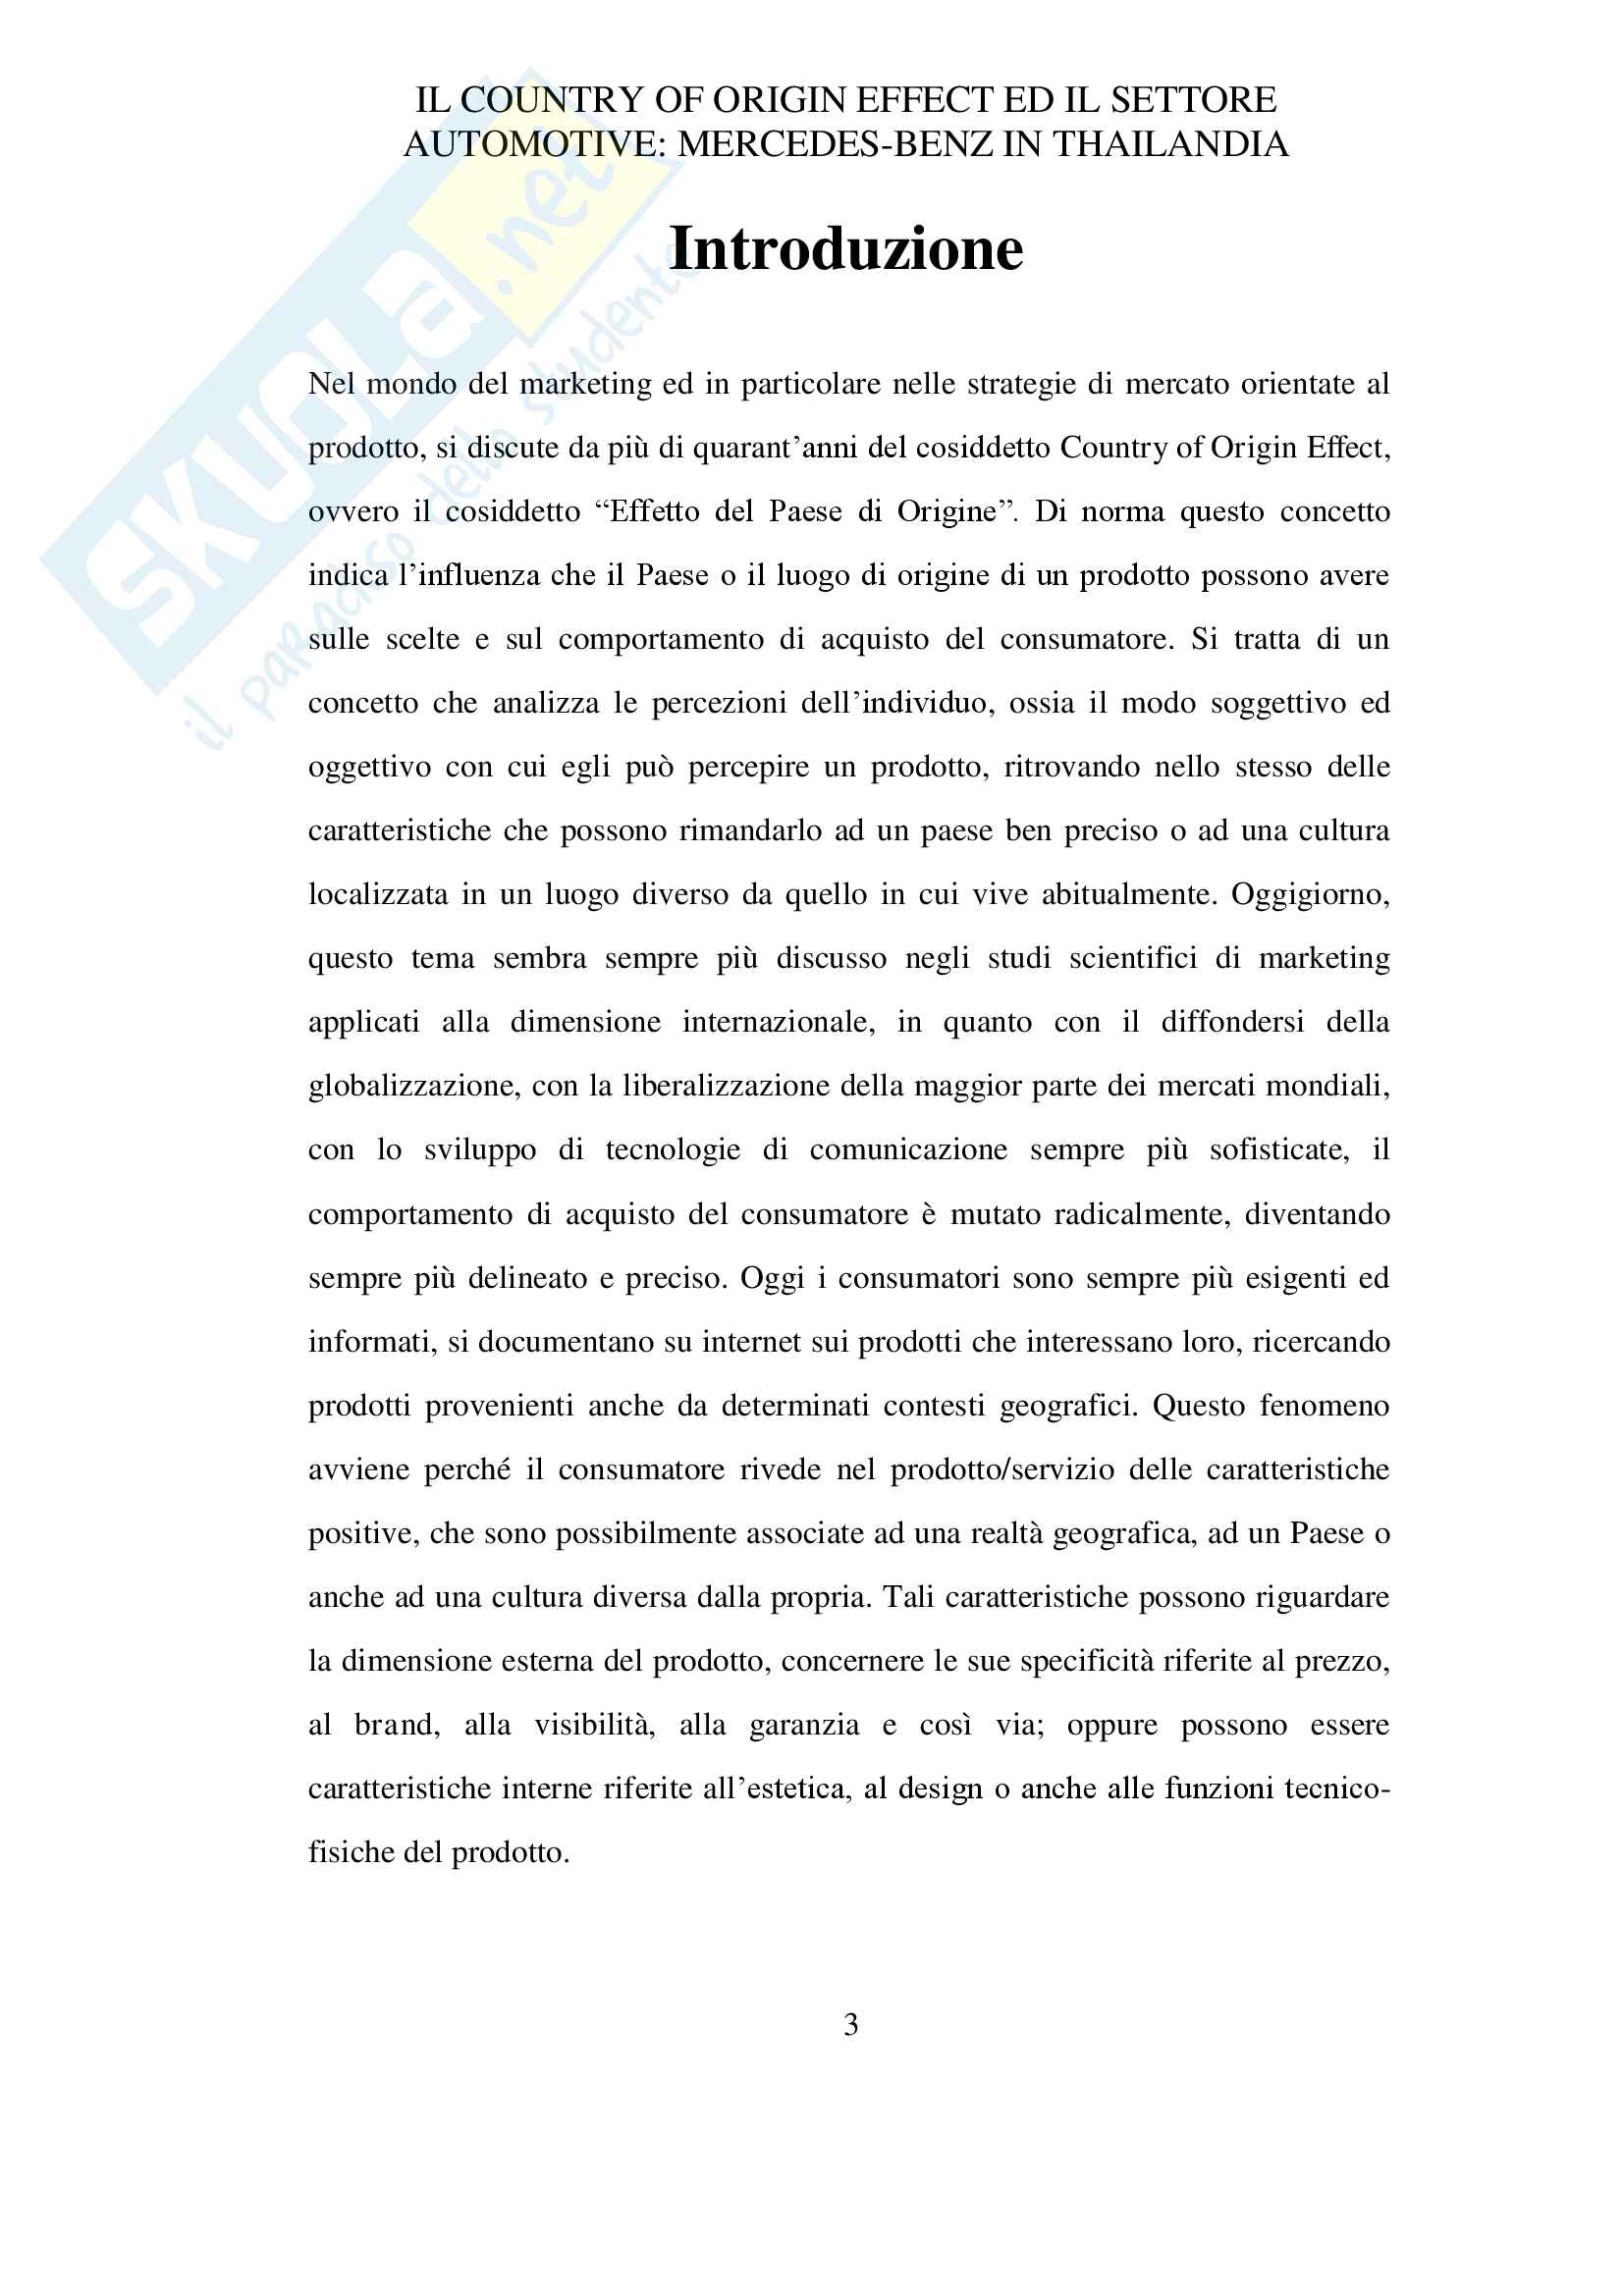 Tesina sul Country of Origin Effect Pag. 1